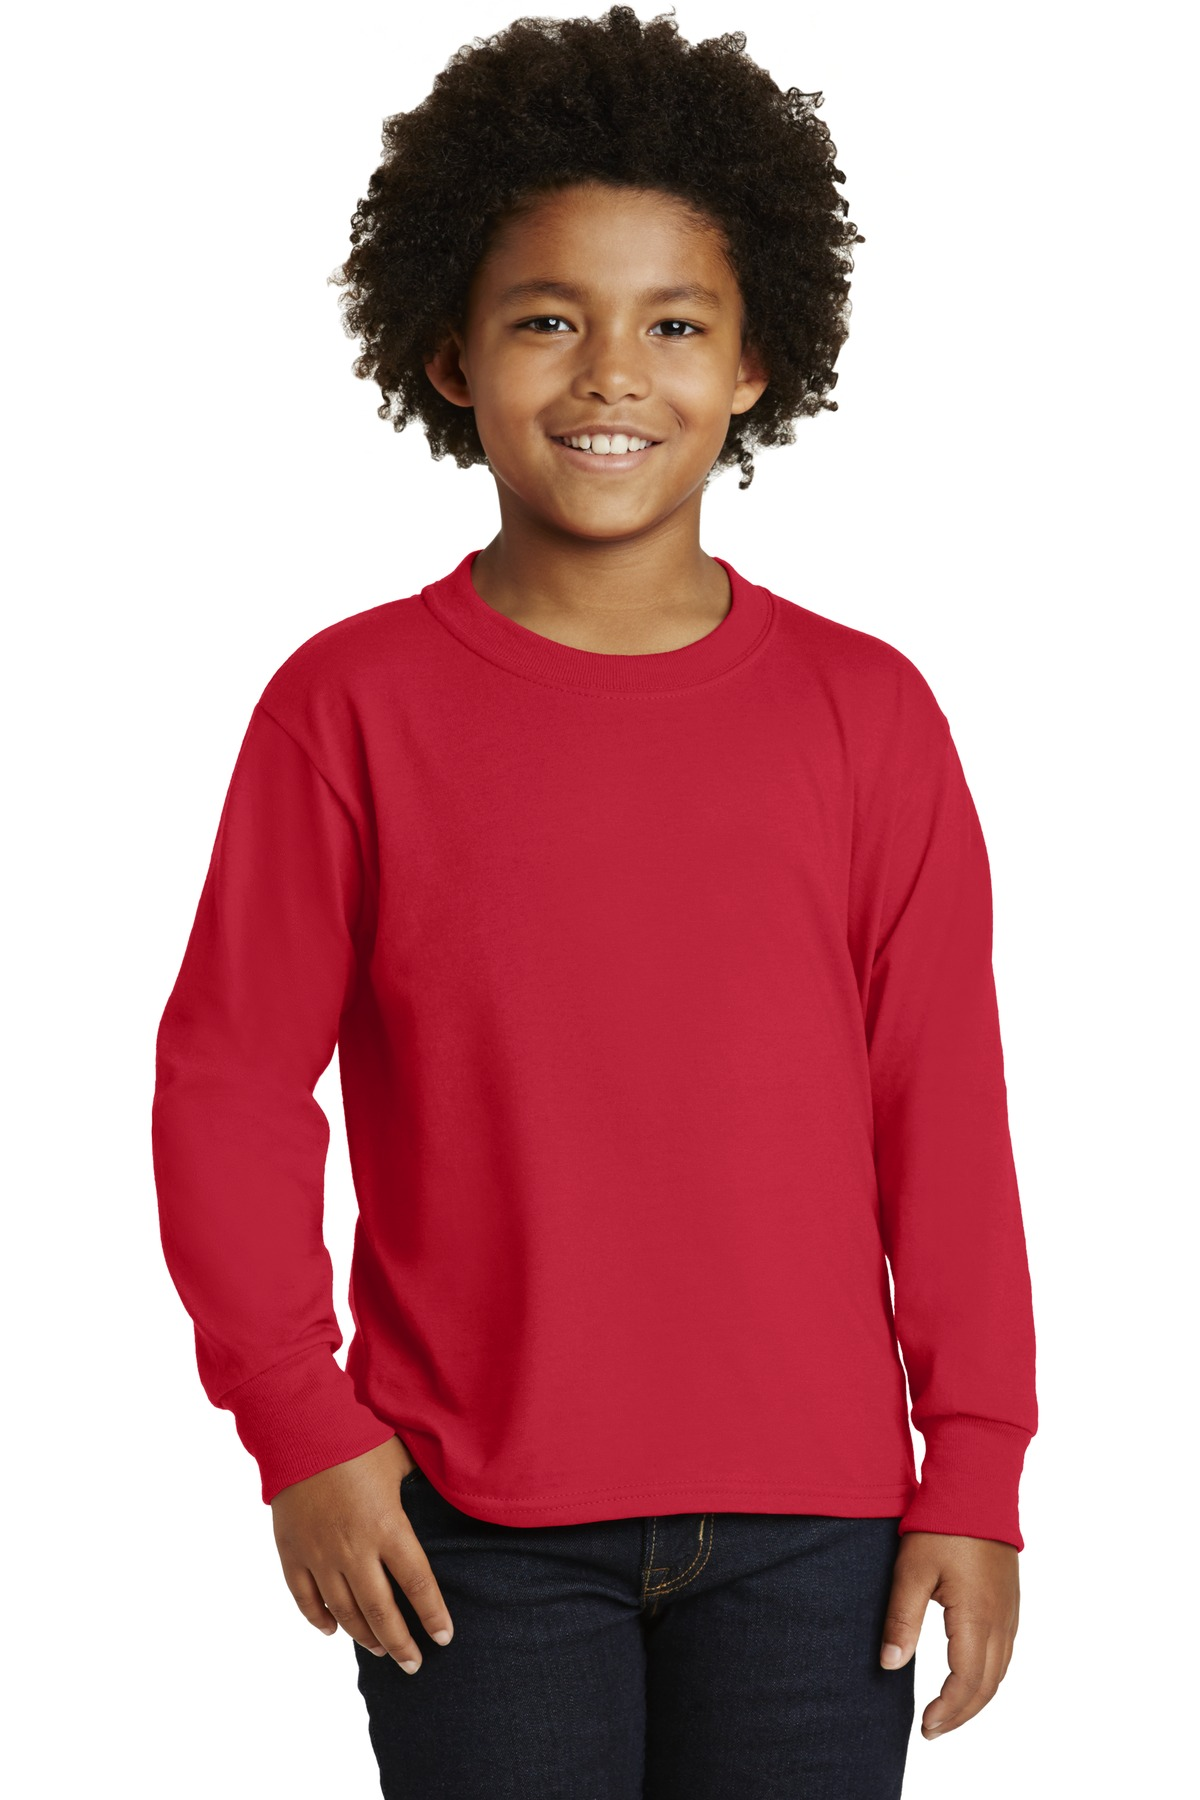 DISCONTINUED JERZEES Youth Dri-Power  Active 50/50 Cotton/Poly Long Sleeve T-Shirt. 29BL